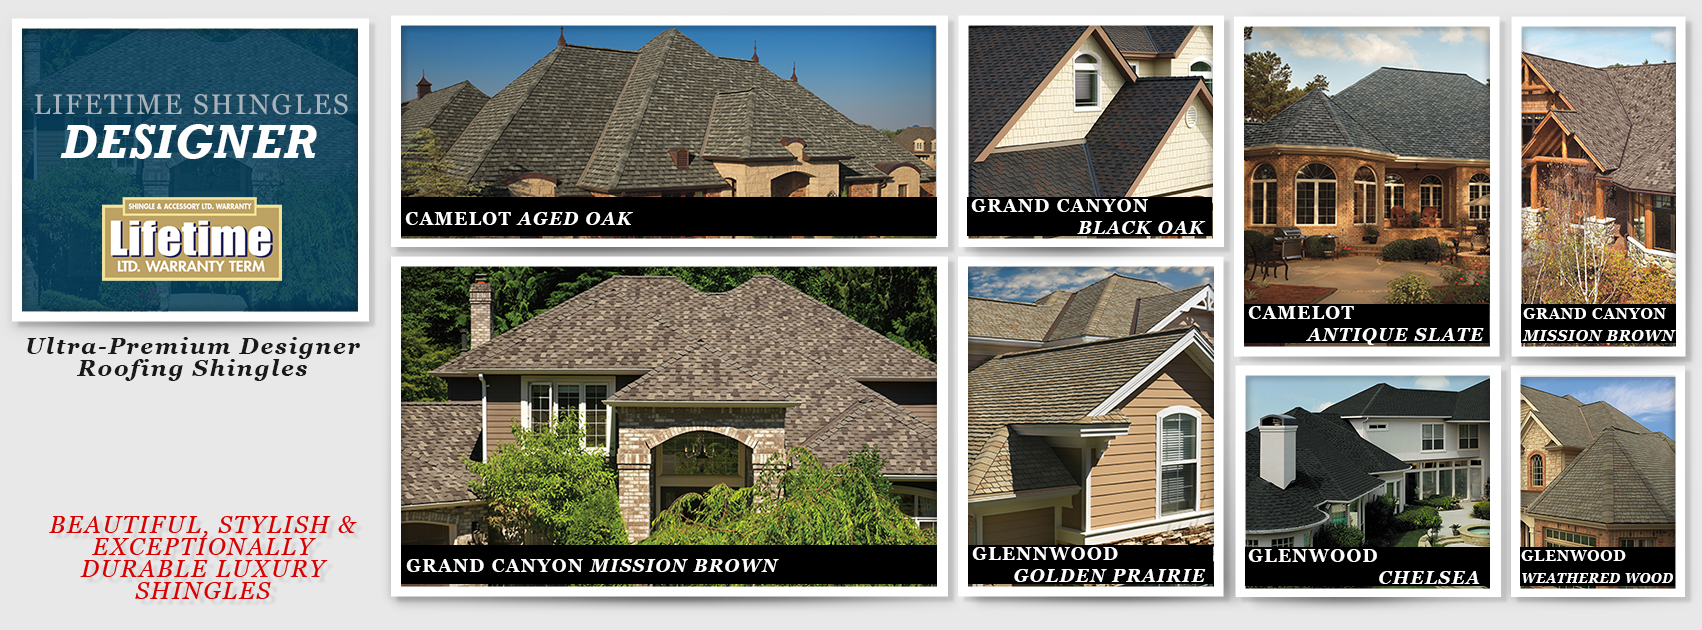 Achten's Quality Roofing of Lakewood image 14